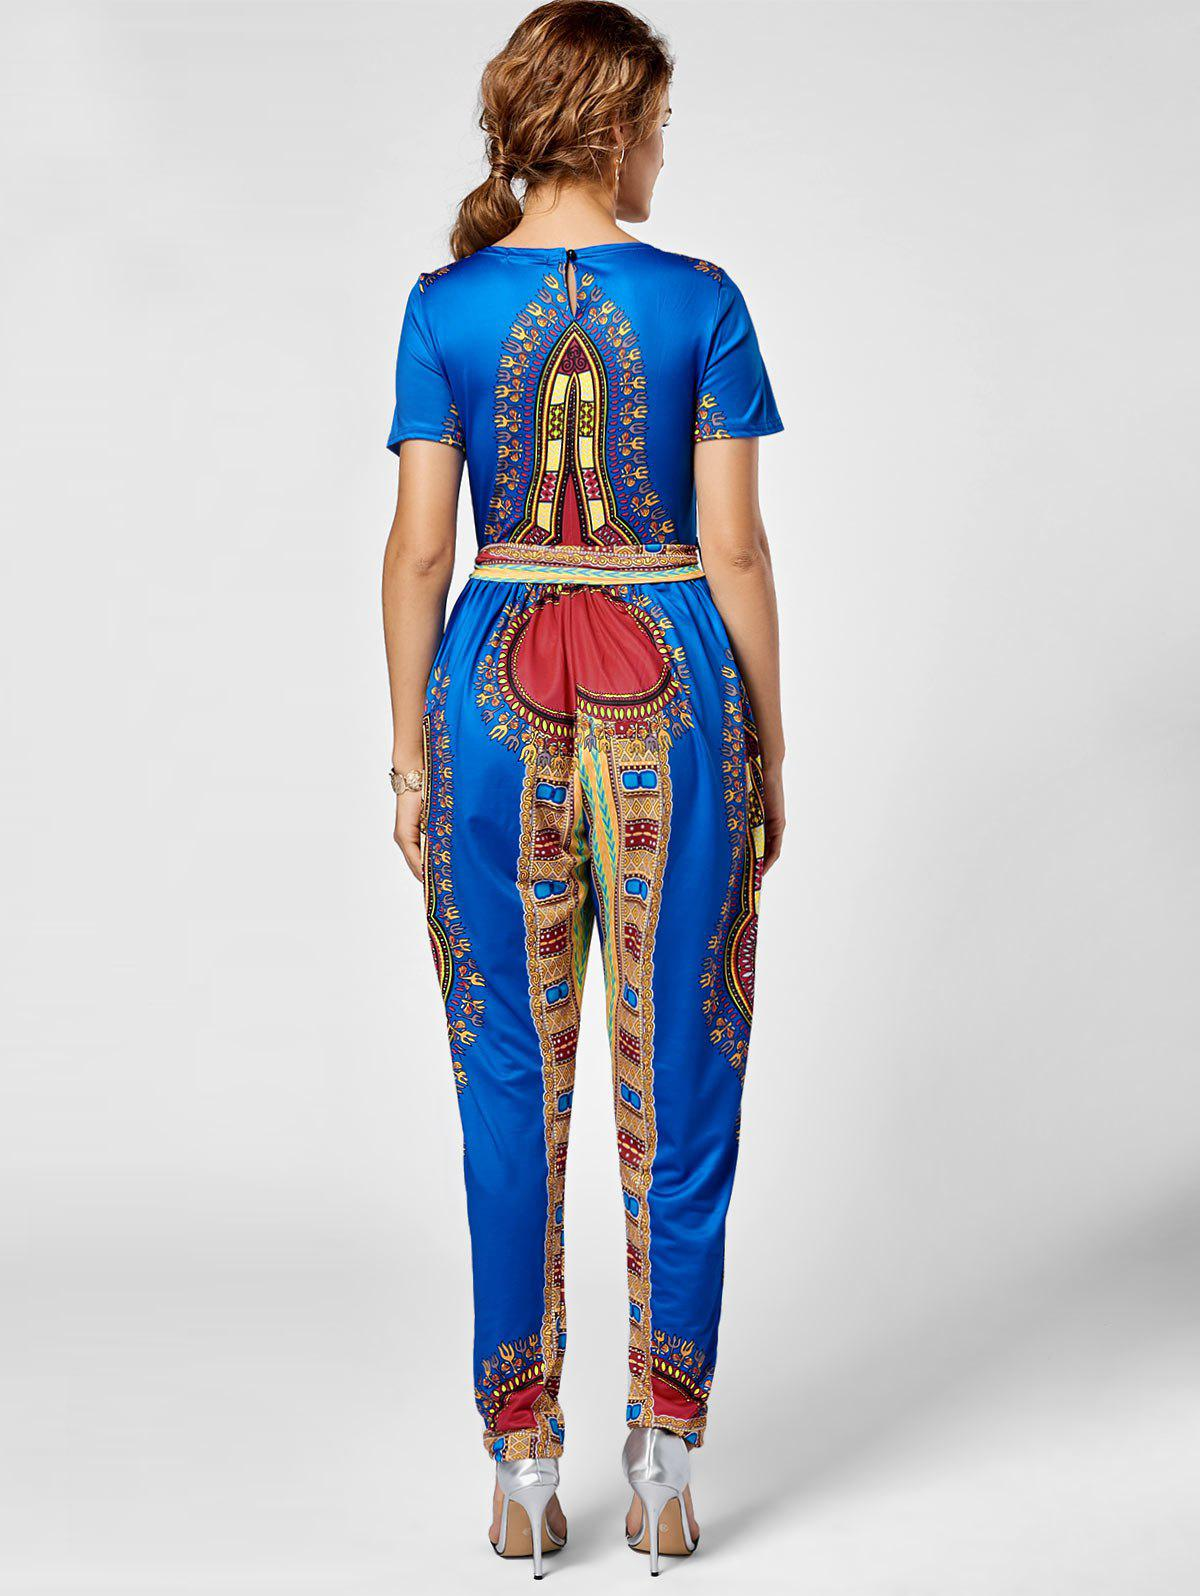 Tribe Print Combinaison Belted - Royal S